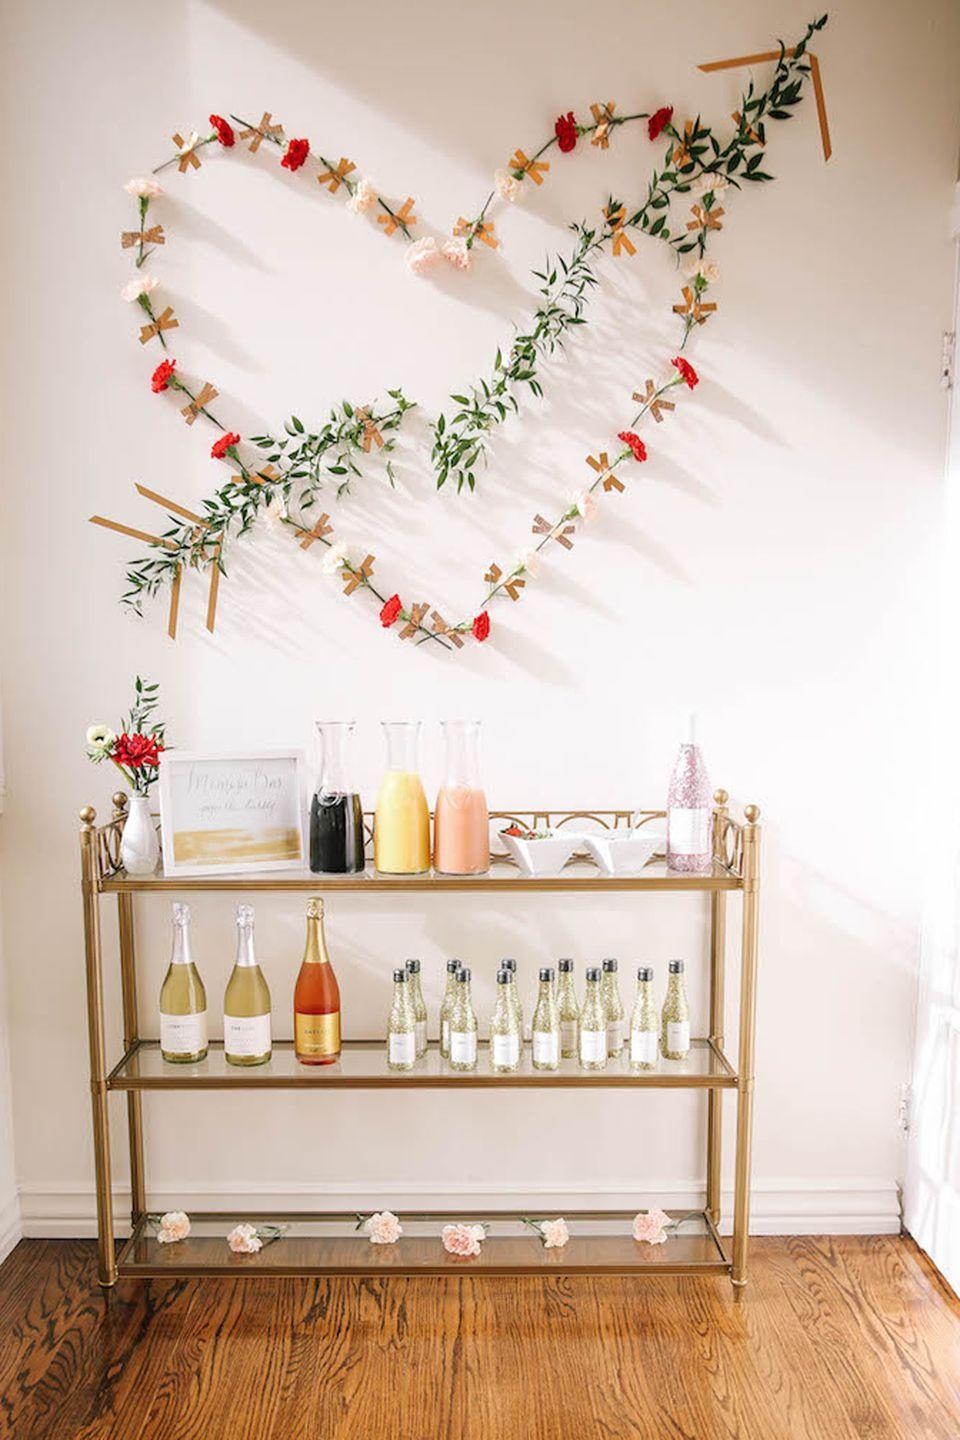 """<p>There's nothing a few rose petals can't make better. <a href=""""https://www.housebeautiful.com/lifestyle/gardening/g13074130/beautiful-flower-images/"""" rel=""""nofollow noopener"""" target=""""_blank"""" data-ylk=""""slk:Fresh flowers"""" class=""""link rapid-noclick-resp"""">Fresh flowers</a>, on and off your bar cart or buffet table, add a romantic touch to any brunch. This heart display is seriously Insta-worthy.</p><p>Get the tutorial at <a href=""""http://theeverygirl.com/how-to-host-a-galentines-day-brunch/"""" rel=""""nofollow noopener"""" target=""""_blank"""" data-ylk=""""slk:The Every Girl"""" class=""""link rapid-noclick-resp"""">The Every Girl</a>.</p>"""